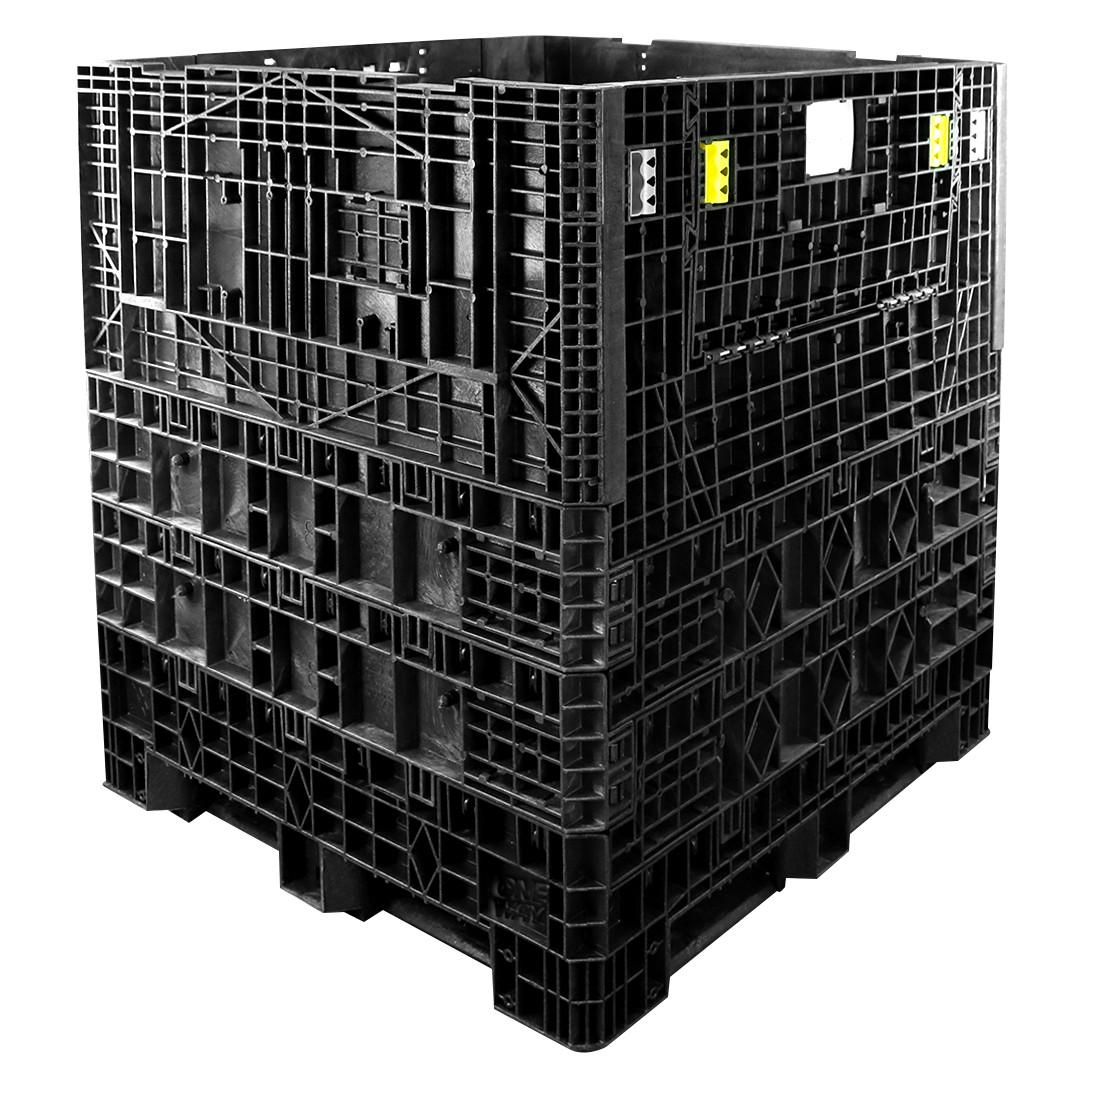 45 X 48 X 50 Collapsible Plastic Container Bin | One Way Solutions #  CP S 45 C 50